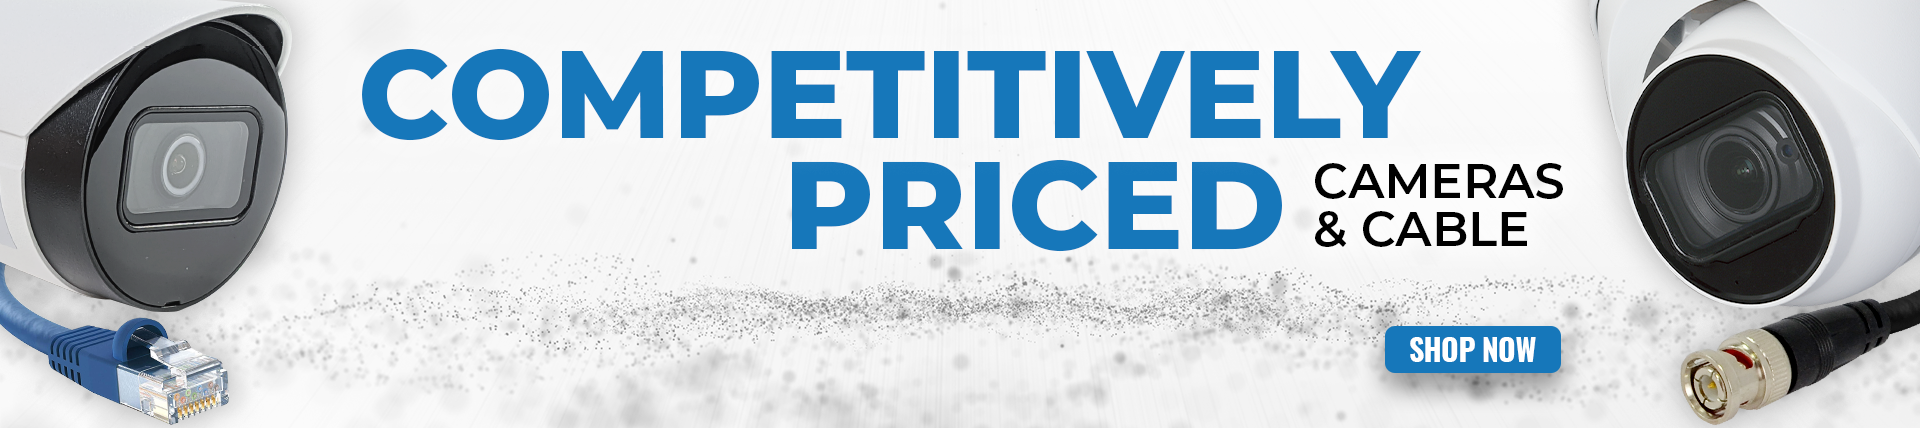 Competitively Priced - Homepage Banner